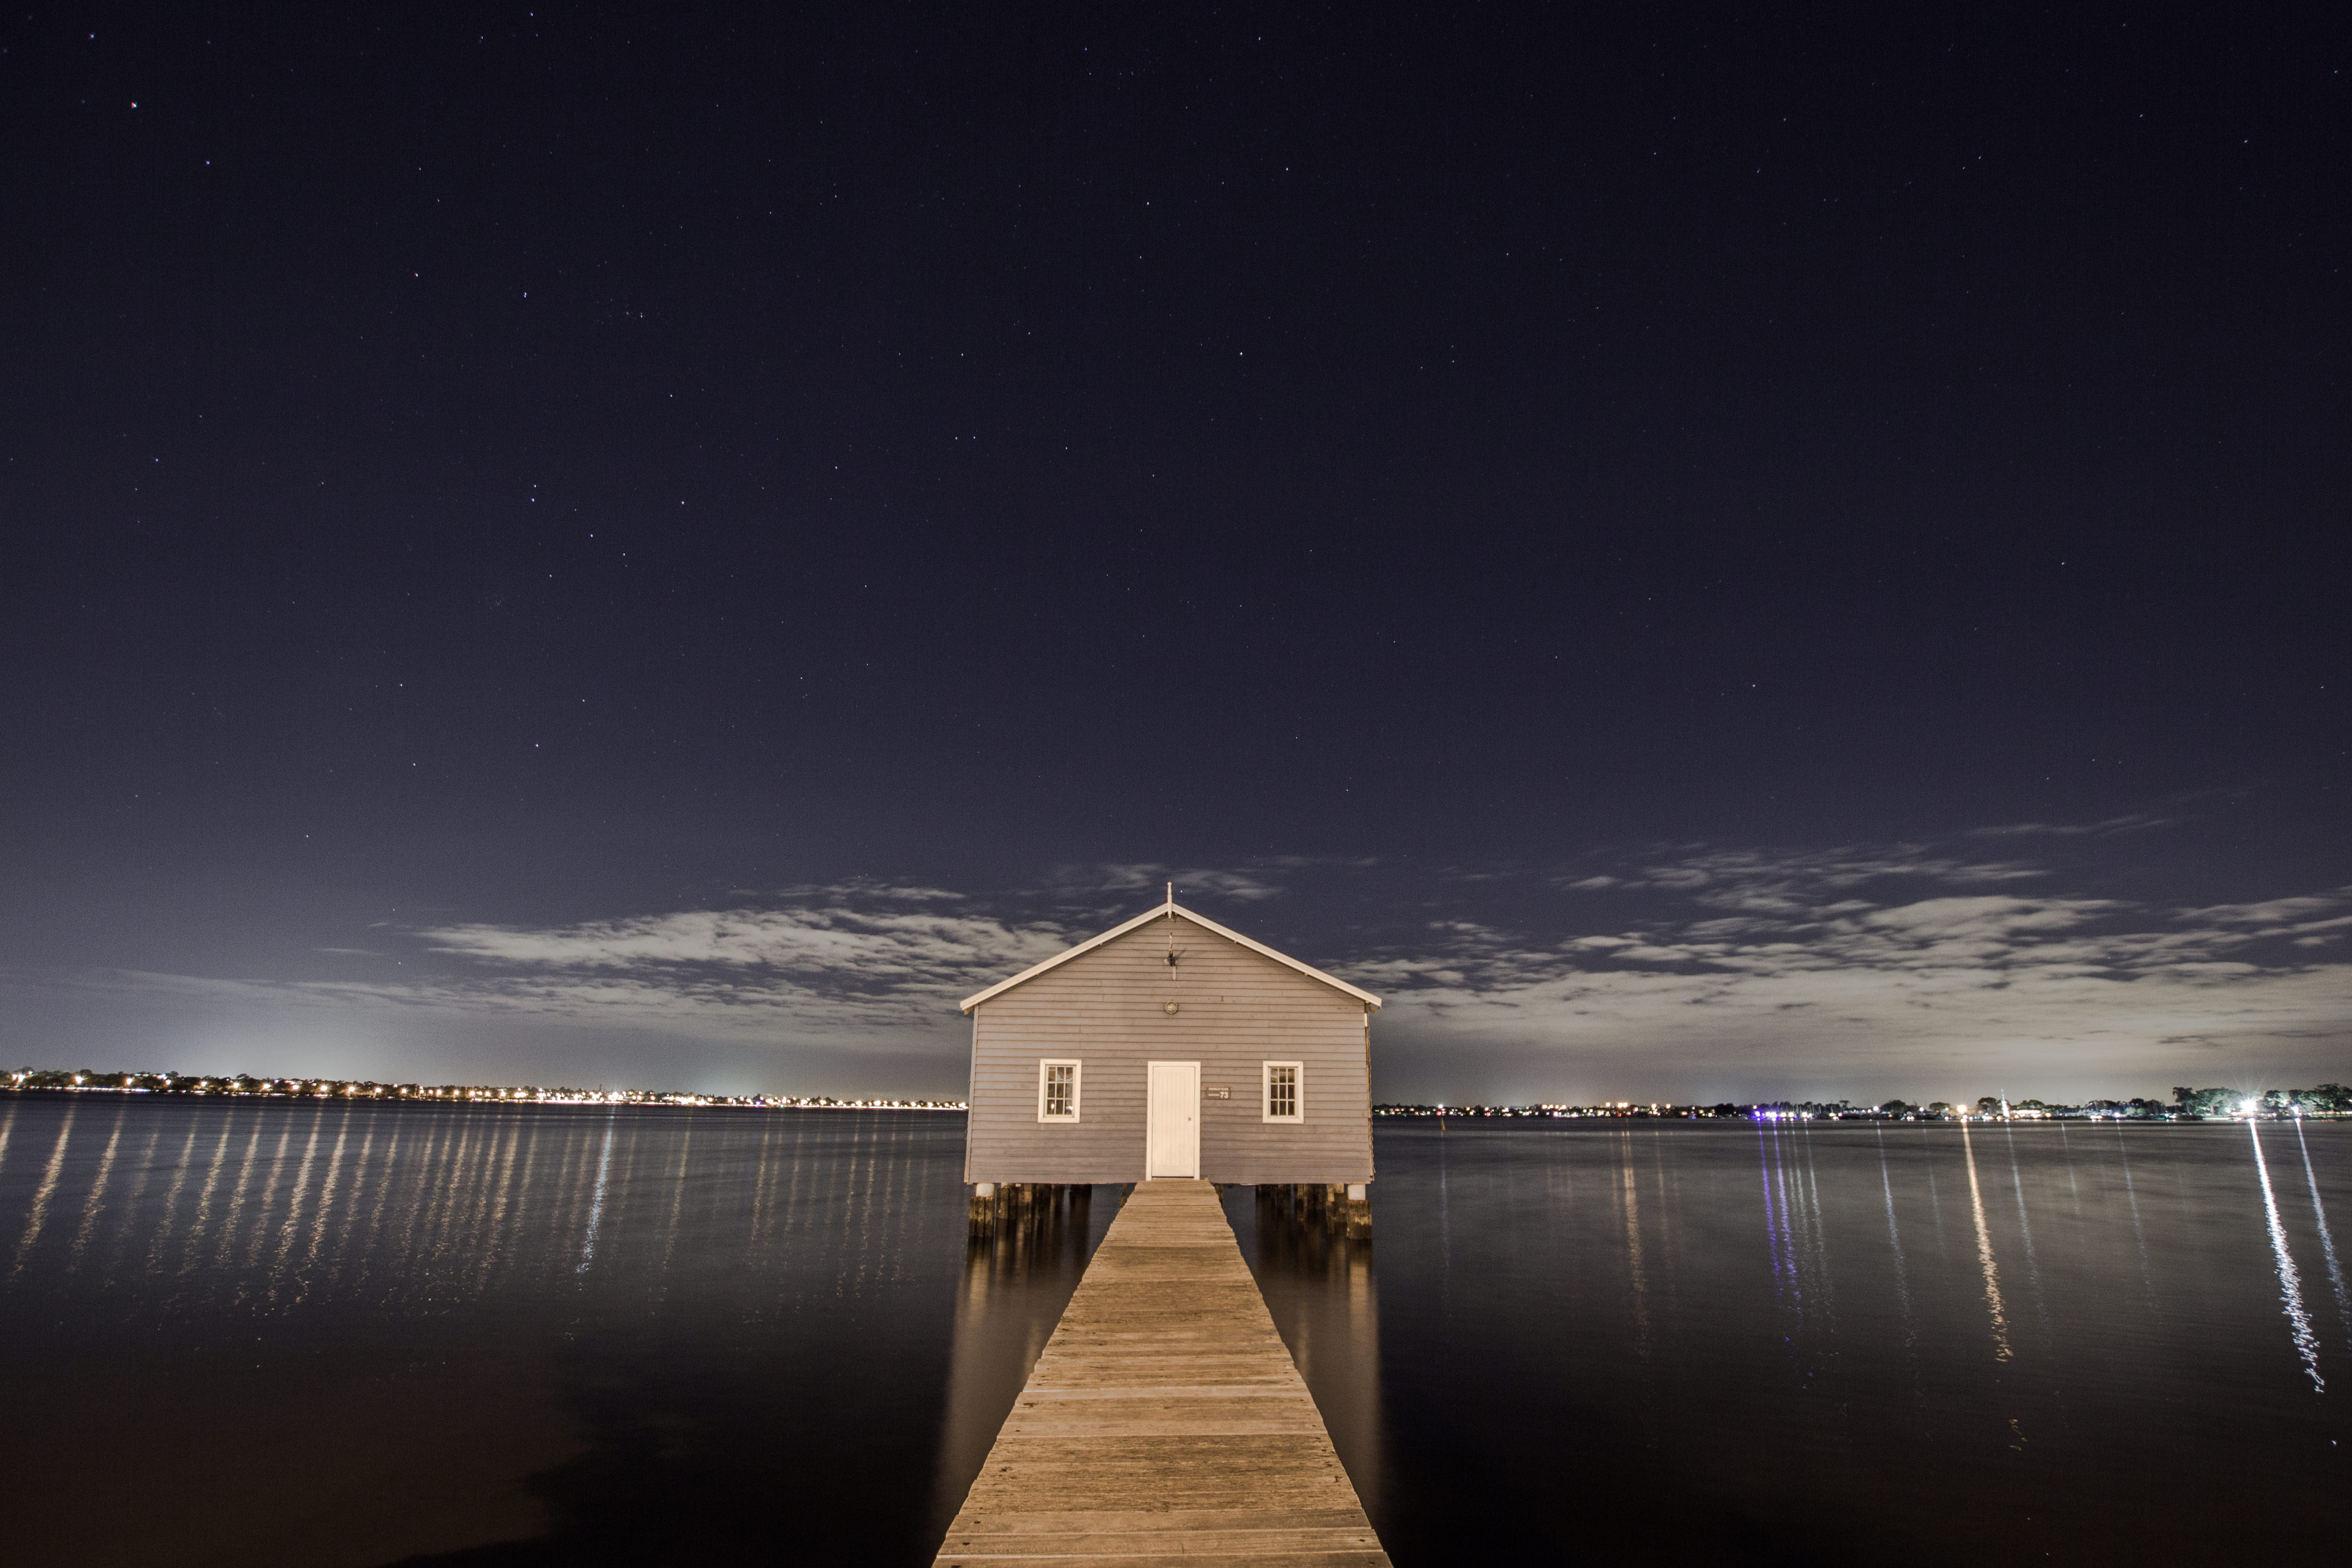 Photo of a wooden shed on the end of a pier, at night, over calm water.